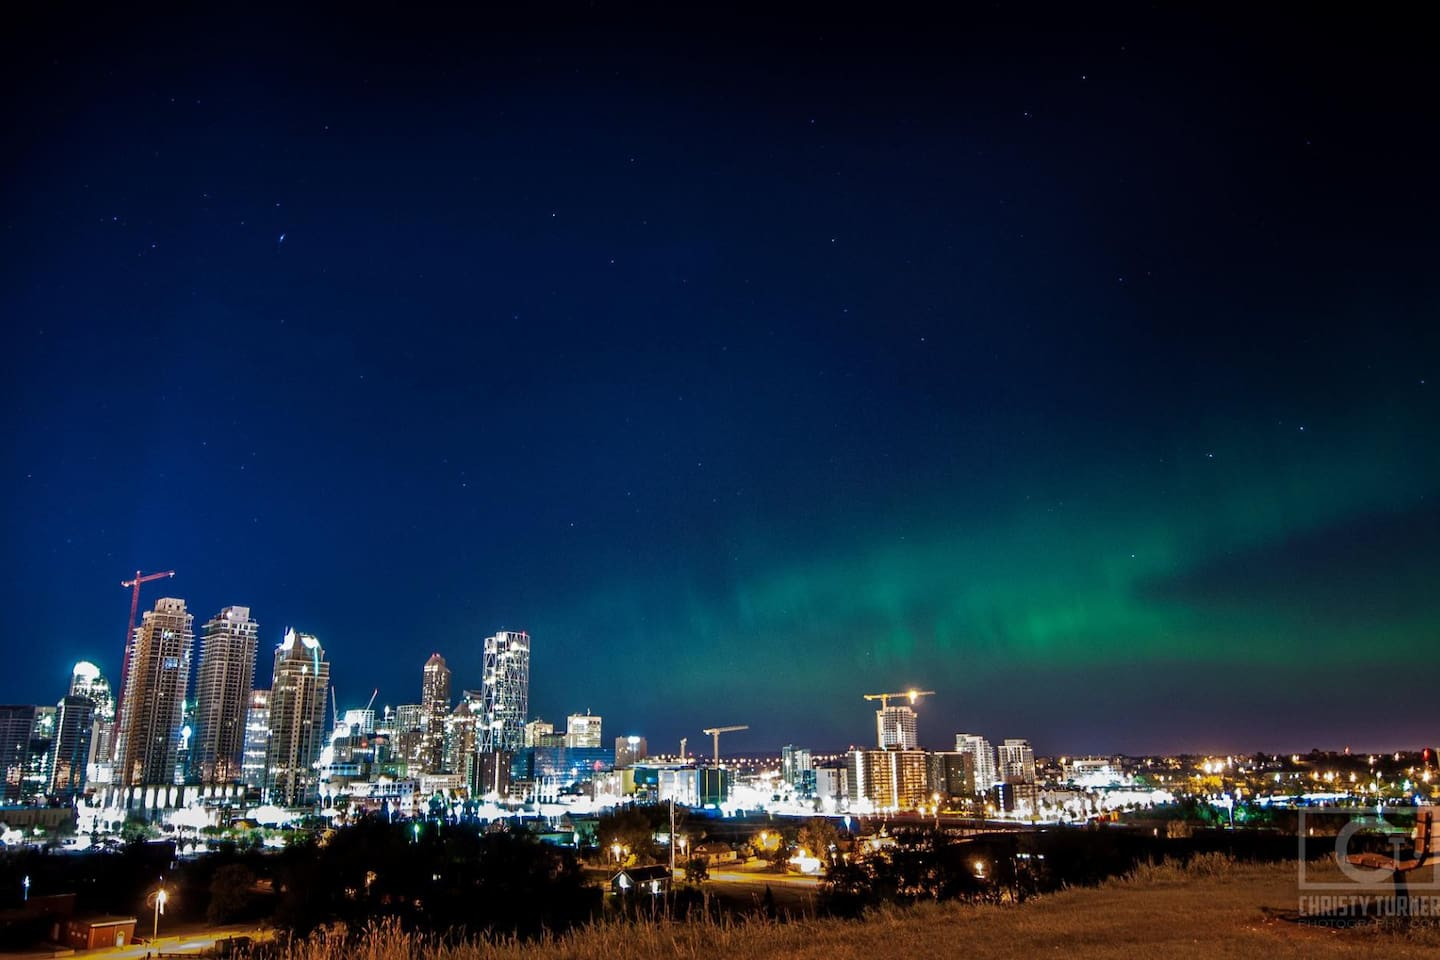 Northern lights in August, 2015. Aurora is found very close to Calgary city limits many nights a year.